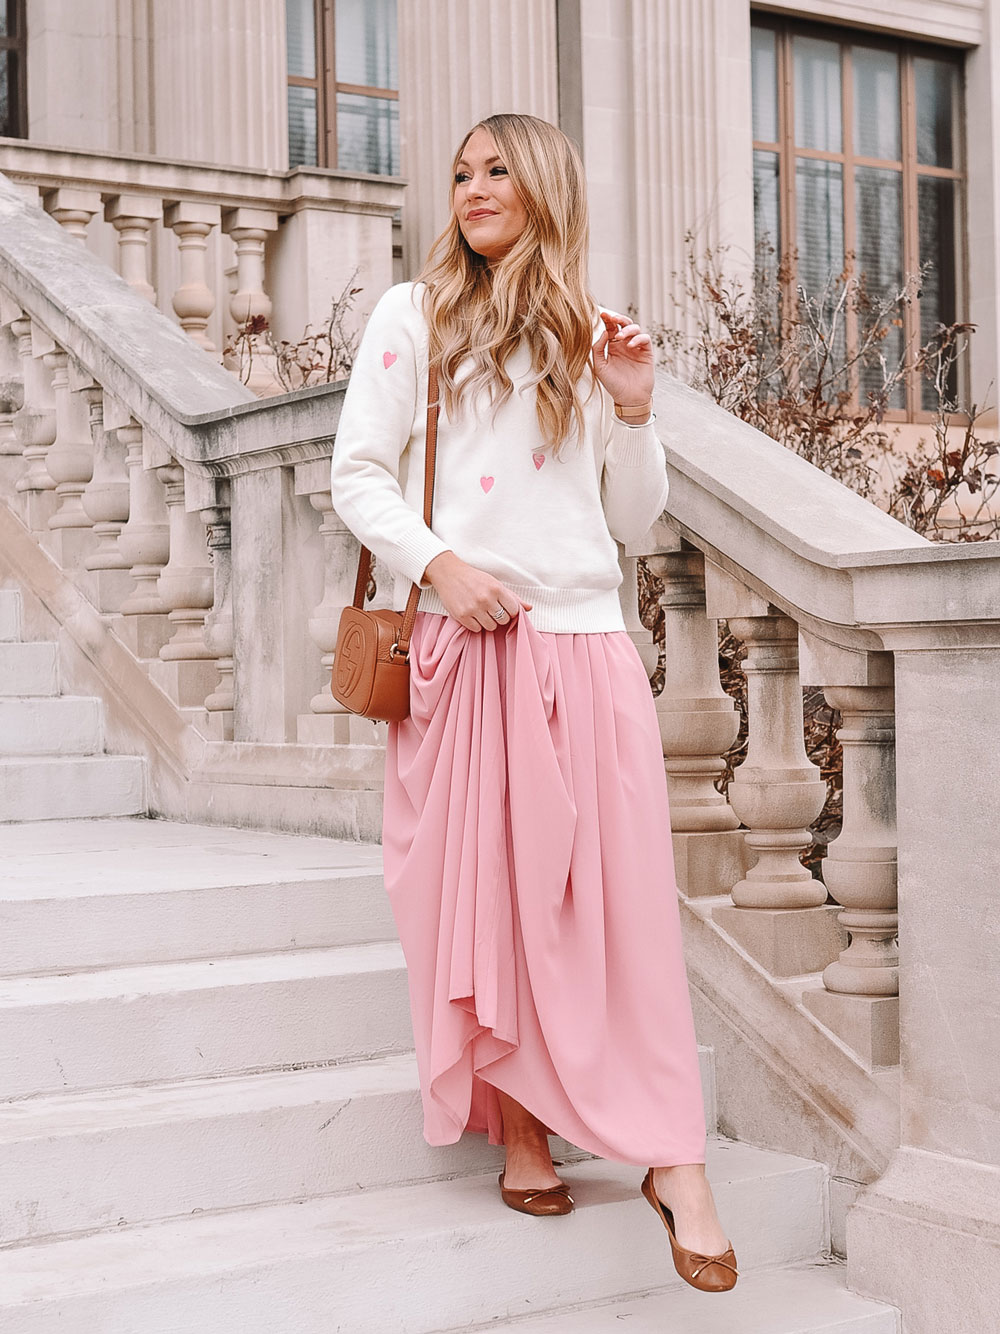 Oklahoma City blogger Amanda's OK wears Valentine's Day outfits